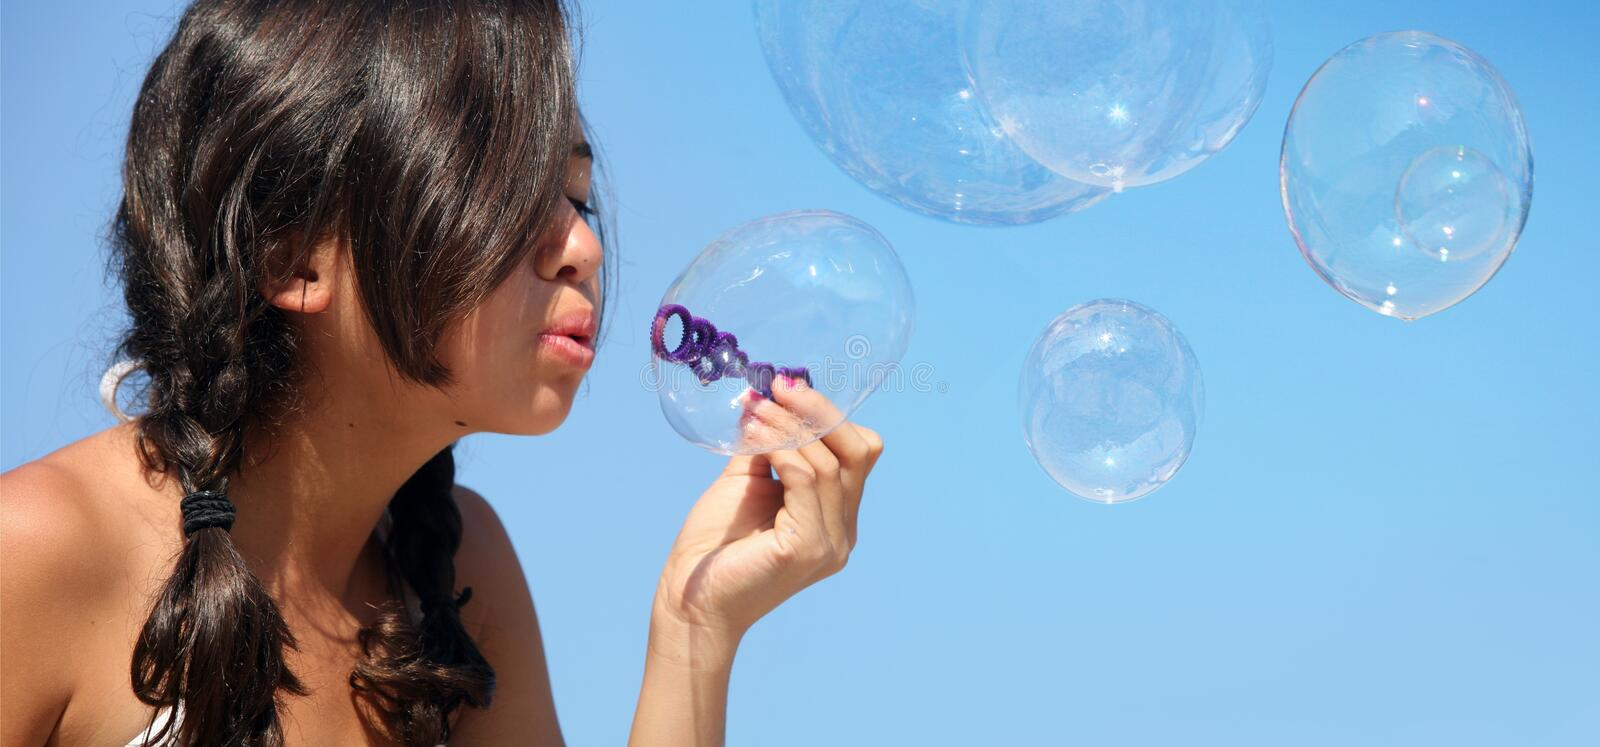 Girl with bubbles royalty free stock photography